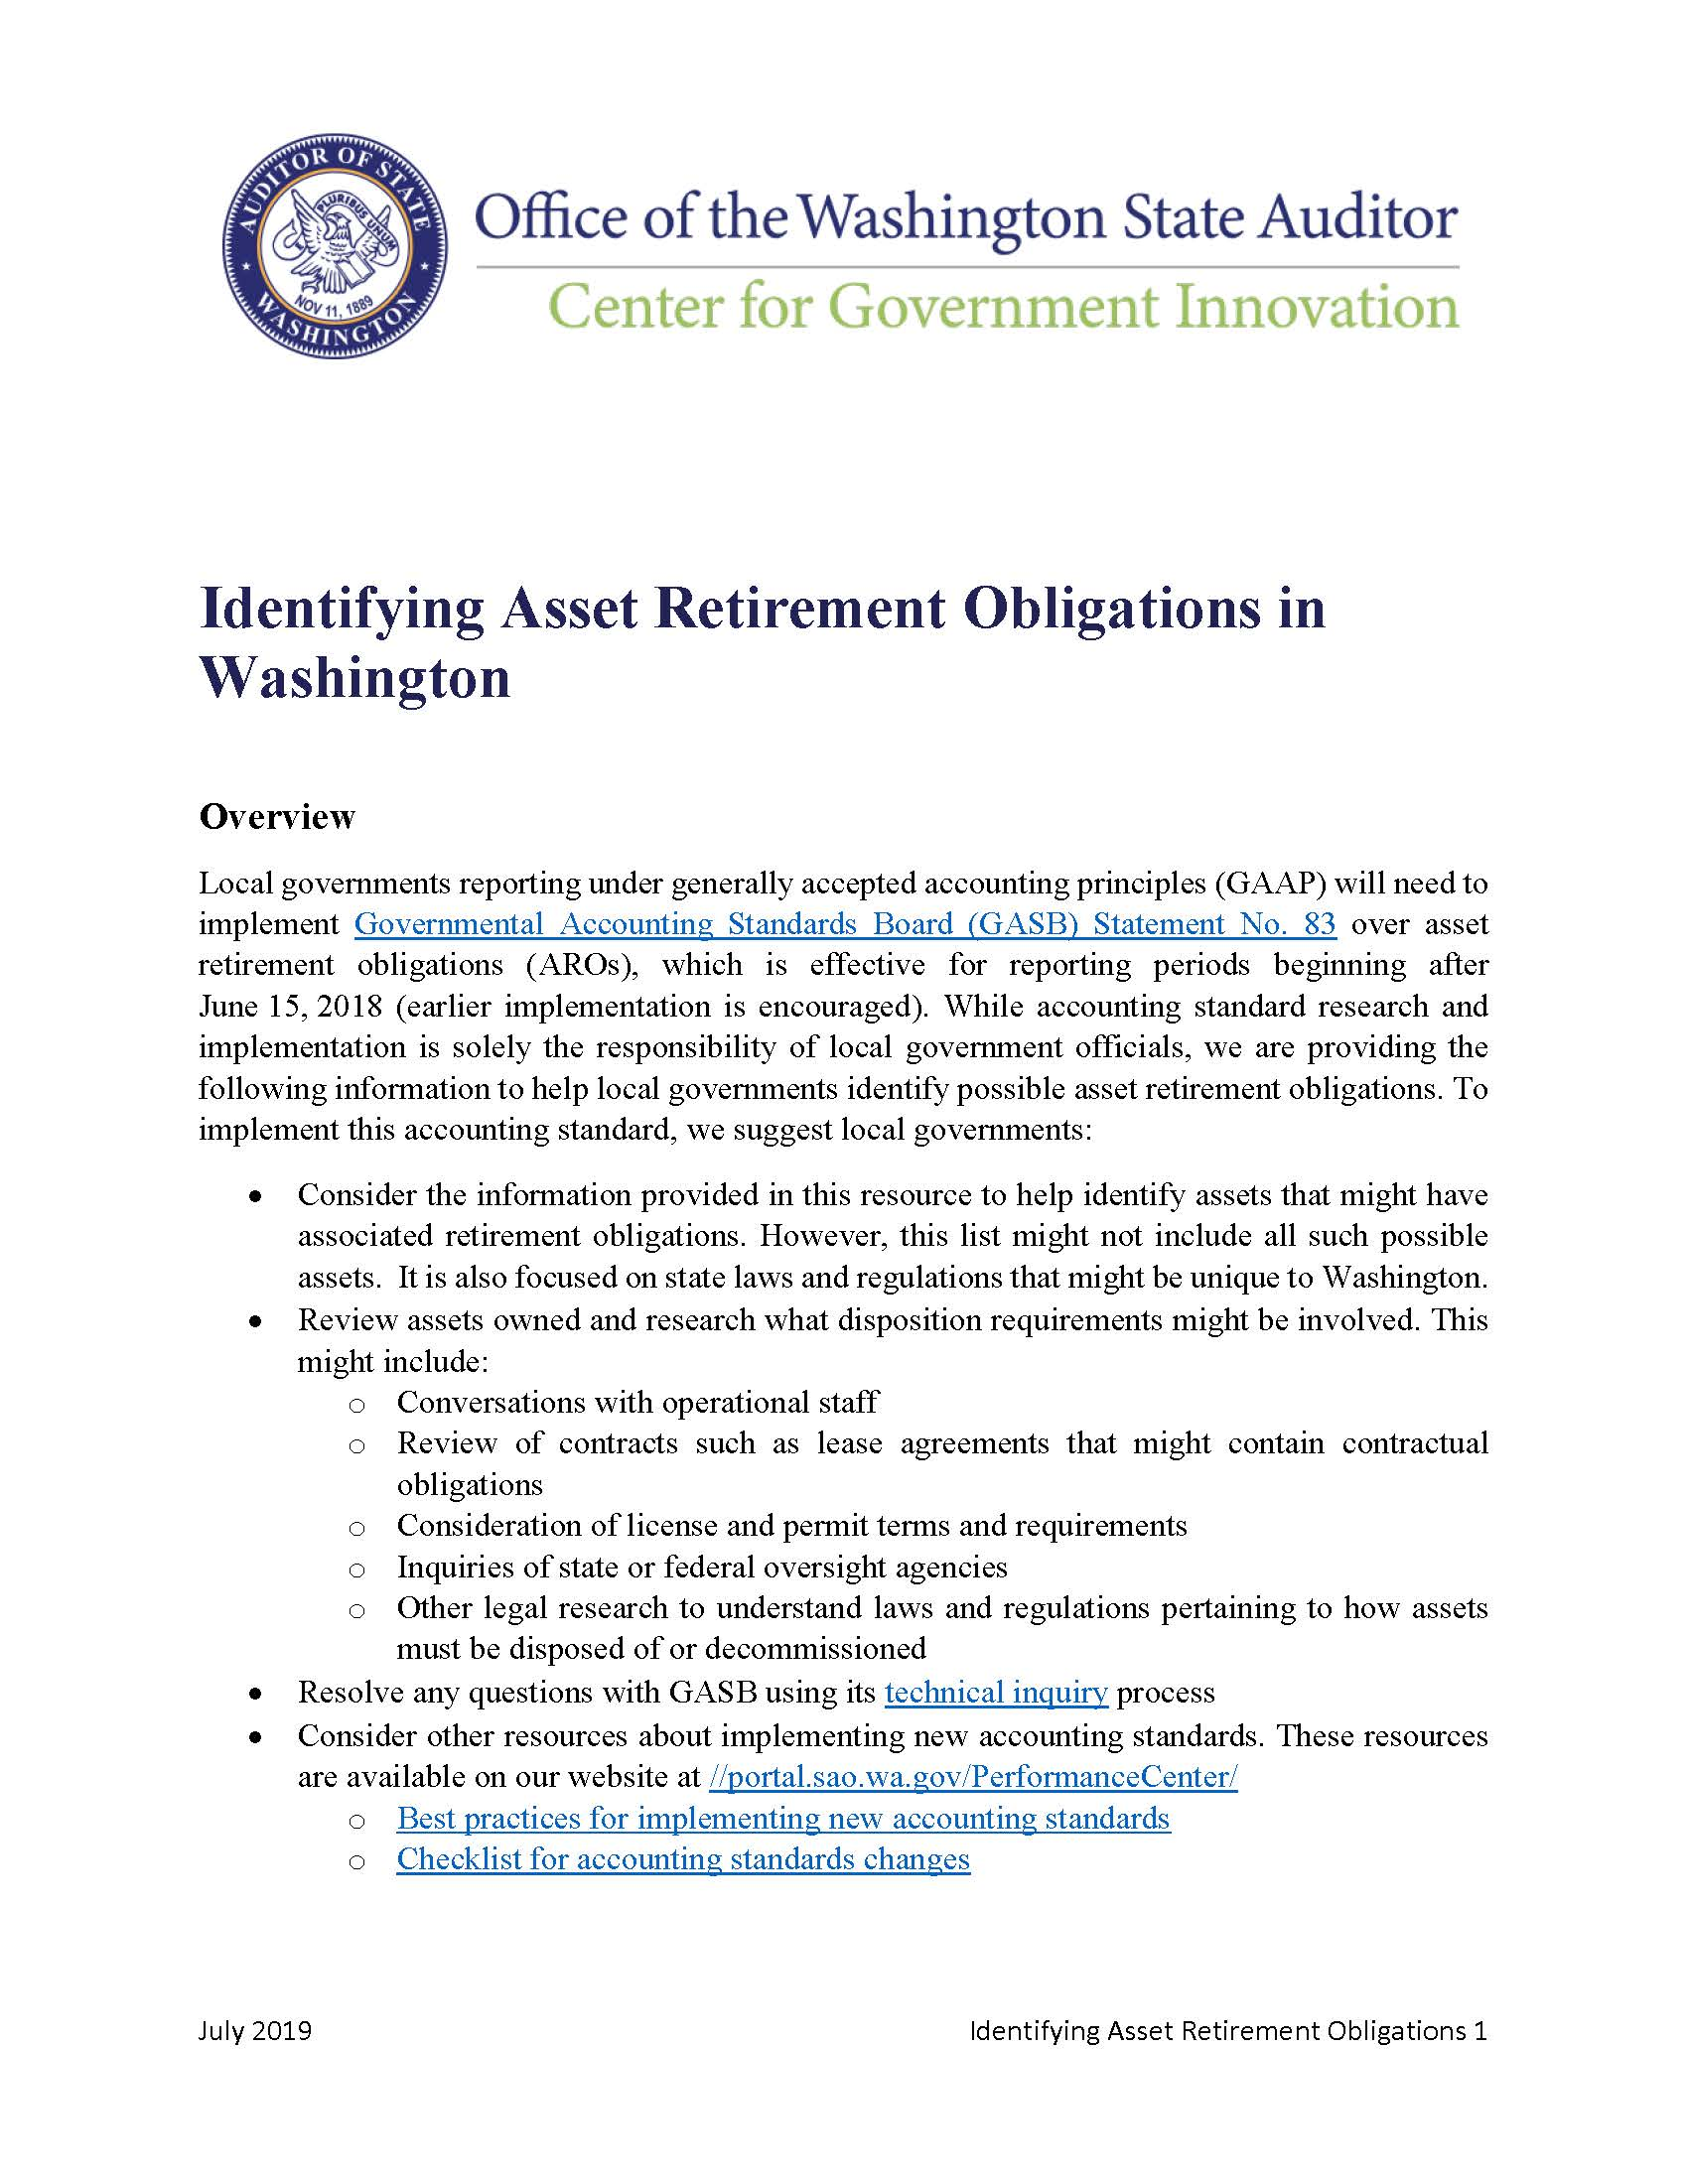 First page of new resource about identifying asset retirement obligations